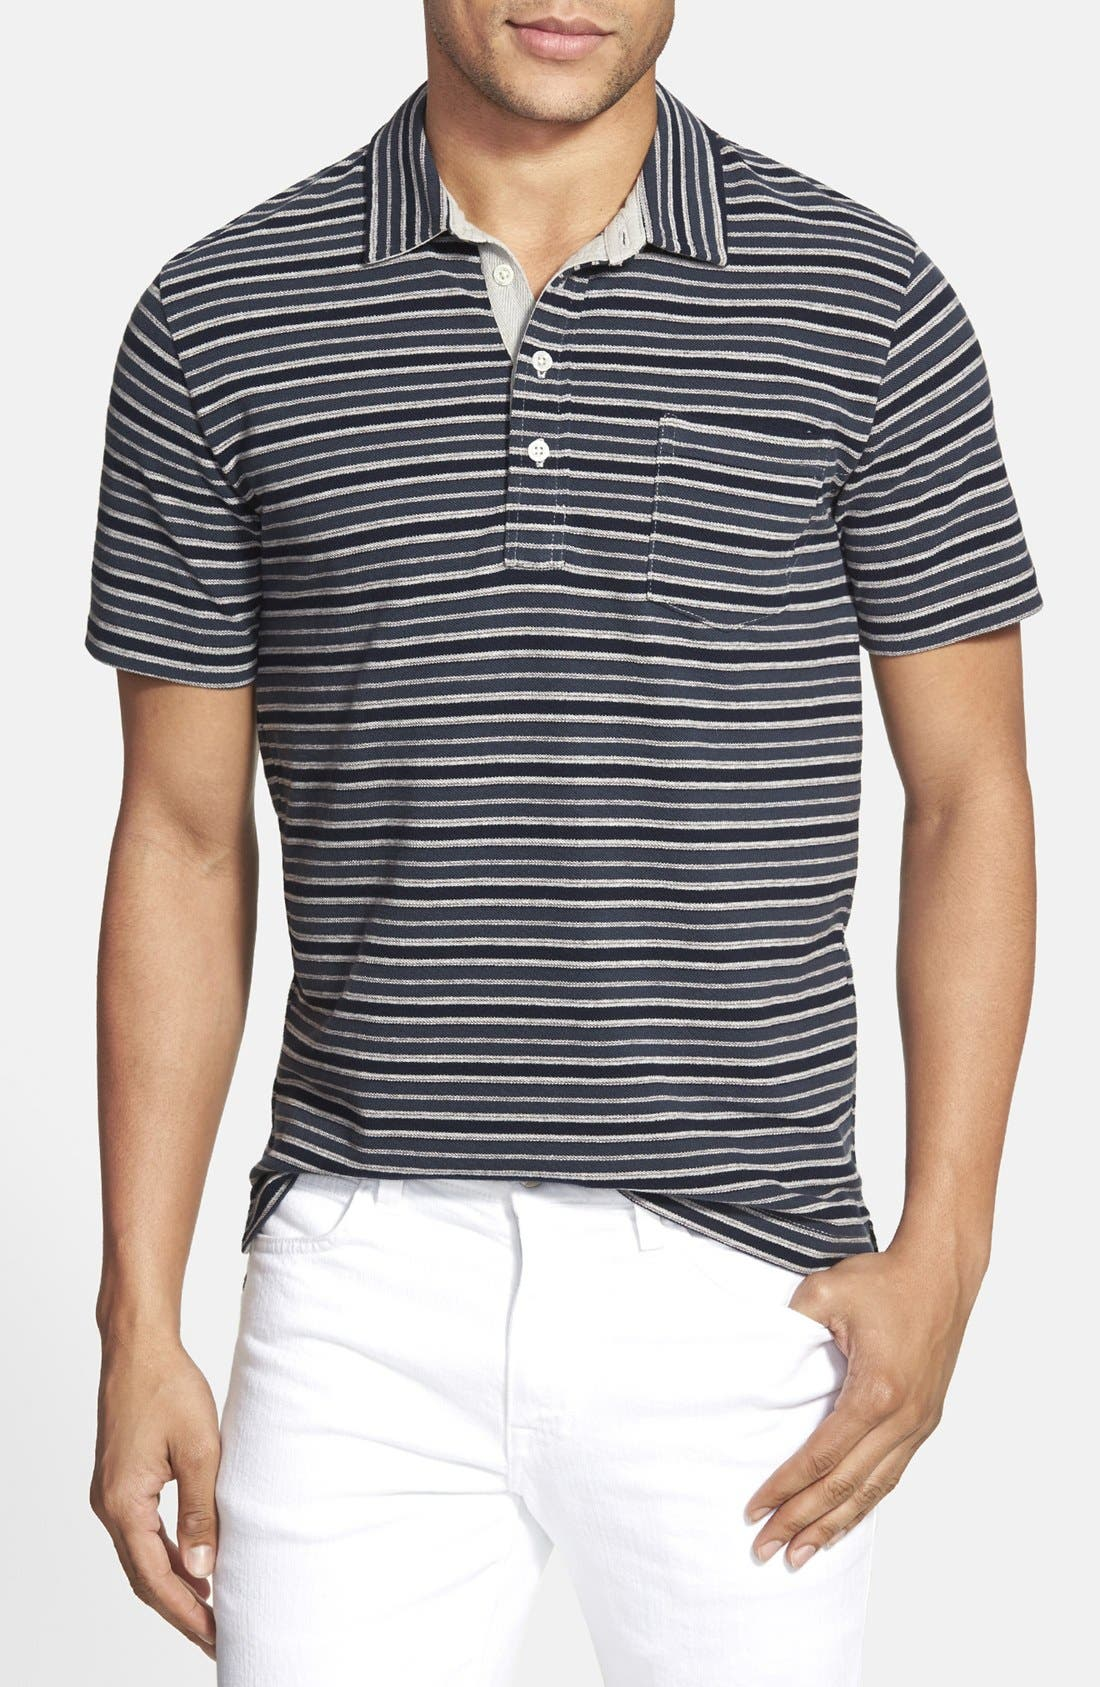 BILLY REID 'Pensacola' Stripe Piqué Polo, Main, color, 410